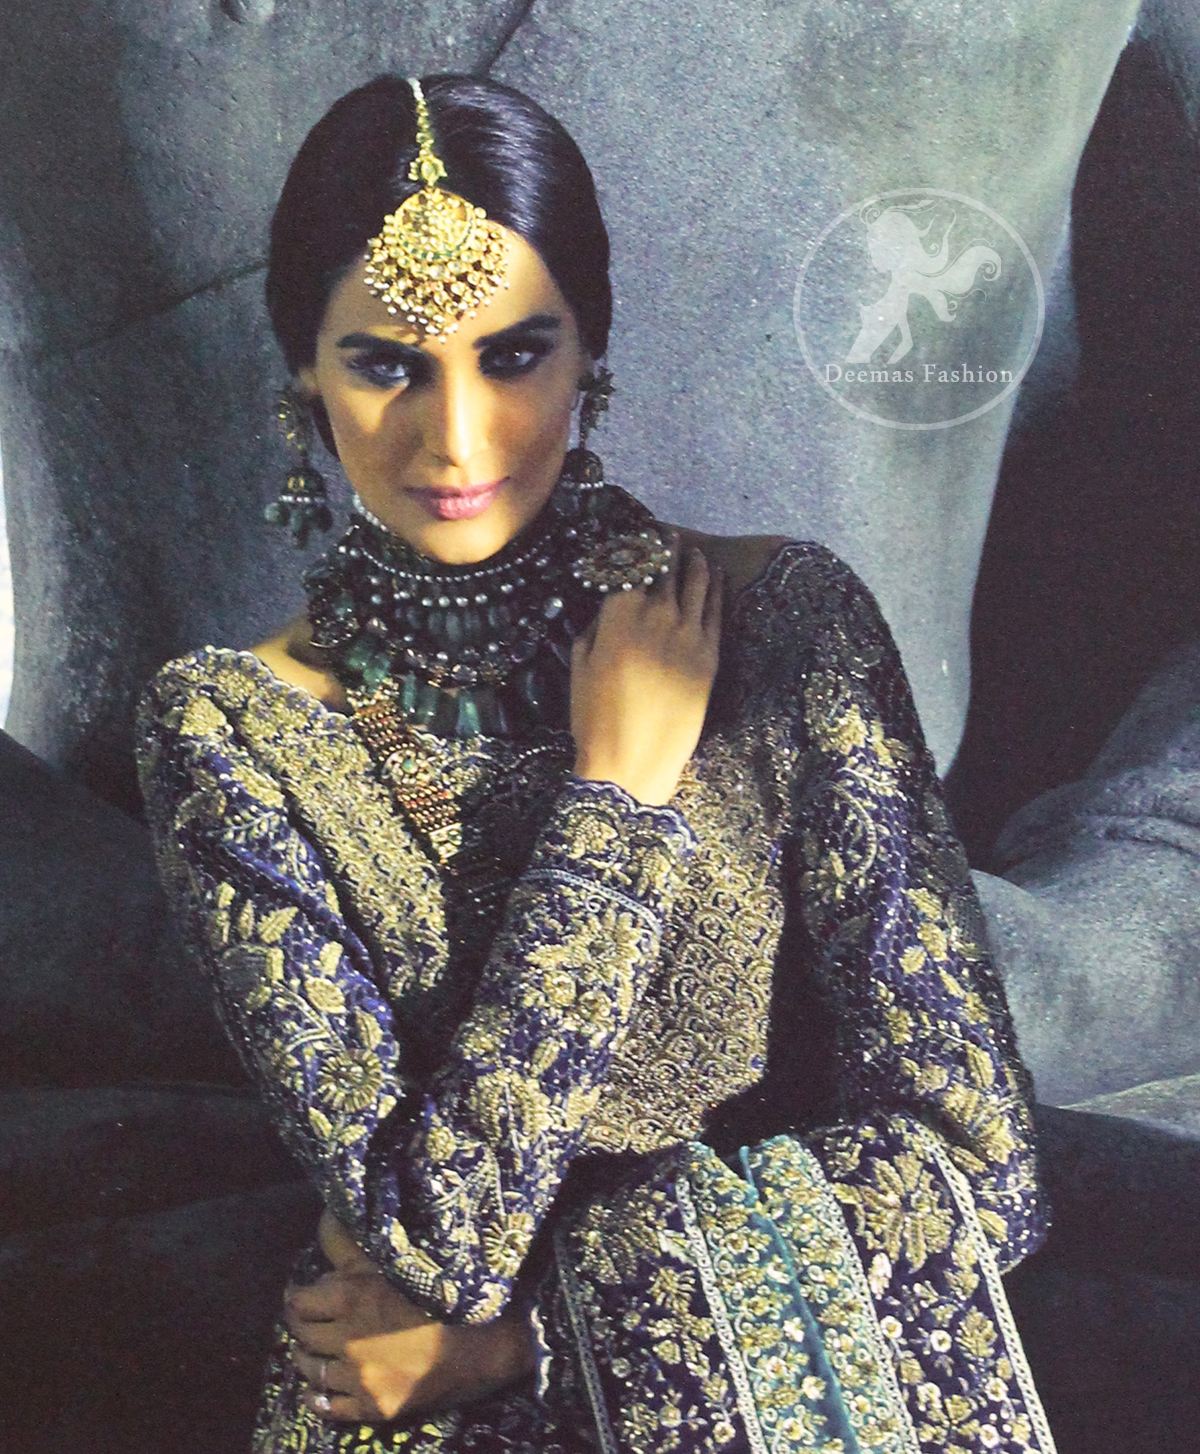 Violet Blue Blouse is of velvet fabric. It is heavy embellished ful sleeves blouse featuring antique and golden shaded kora, dabka, resham, naqshi, pearls, crystals and swarovski. Blouse is fully scalloped with blue bayoux resham outline. sleeves are adorned with floral work and sprinkling sequins/naqshi on it, while bodice having crossing heavy pattern all over it. It comes with raw silk lehengha which is adorned with block printing. It is artistically coordinated with blue bayoux dupatta which is adorned with fully embellished appliqued borders. Borders are accompnied by delicate work along its internal sides. There are four embellished heavy flowers on corners and small floral pattern all over it.